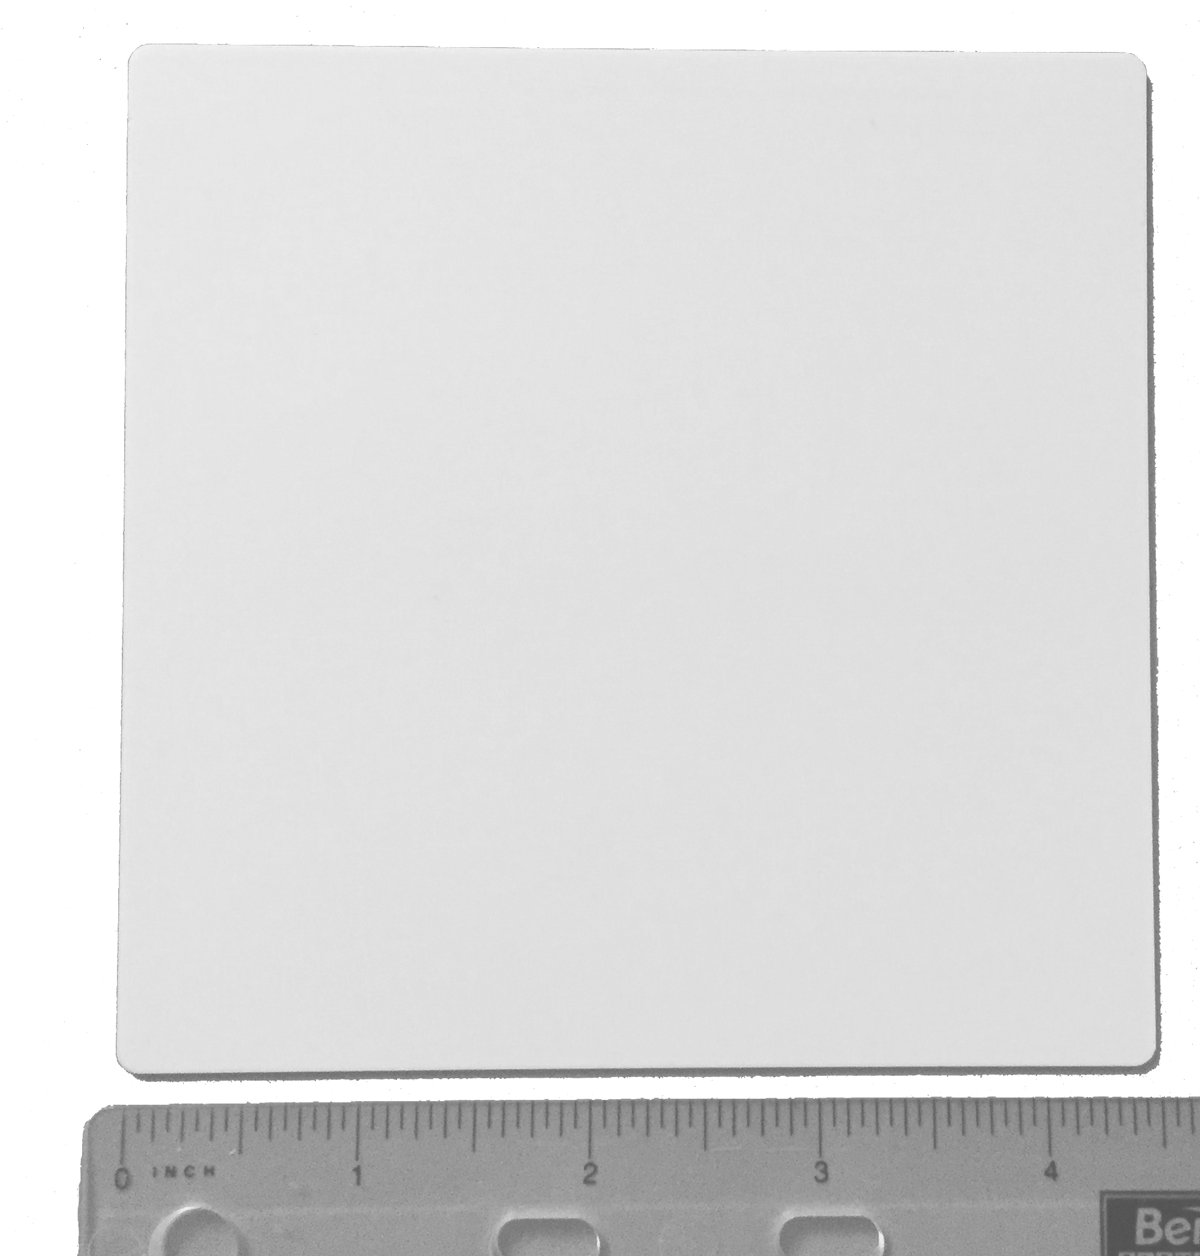 CP3 Brand 1x Alumina Ceramic Plate 4.5' Square 114cm Square 1mm .0394' thick rounded corners by CP3, Inc.